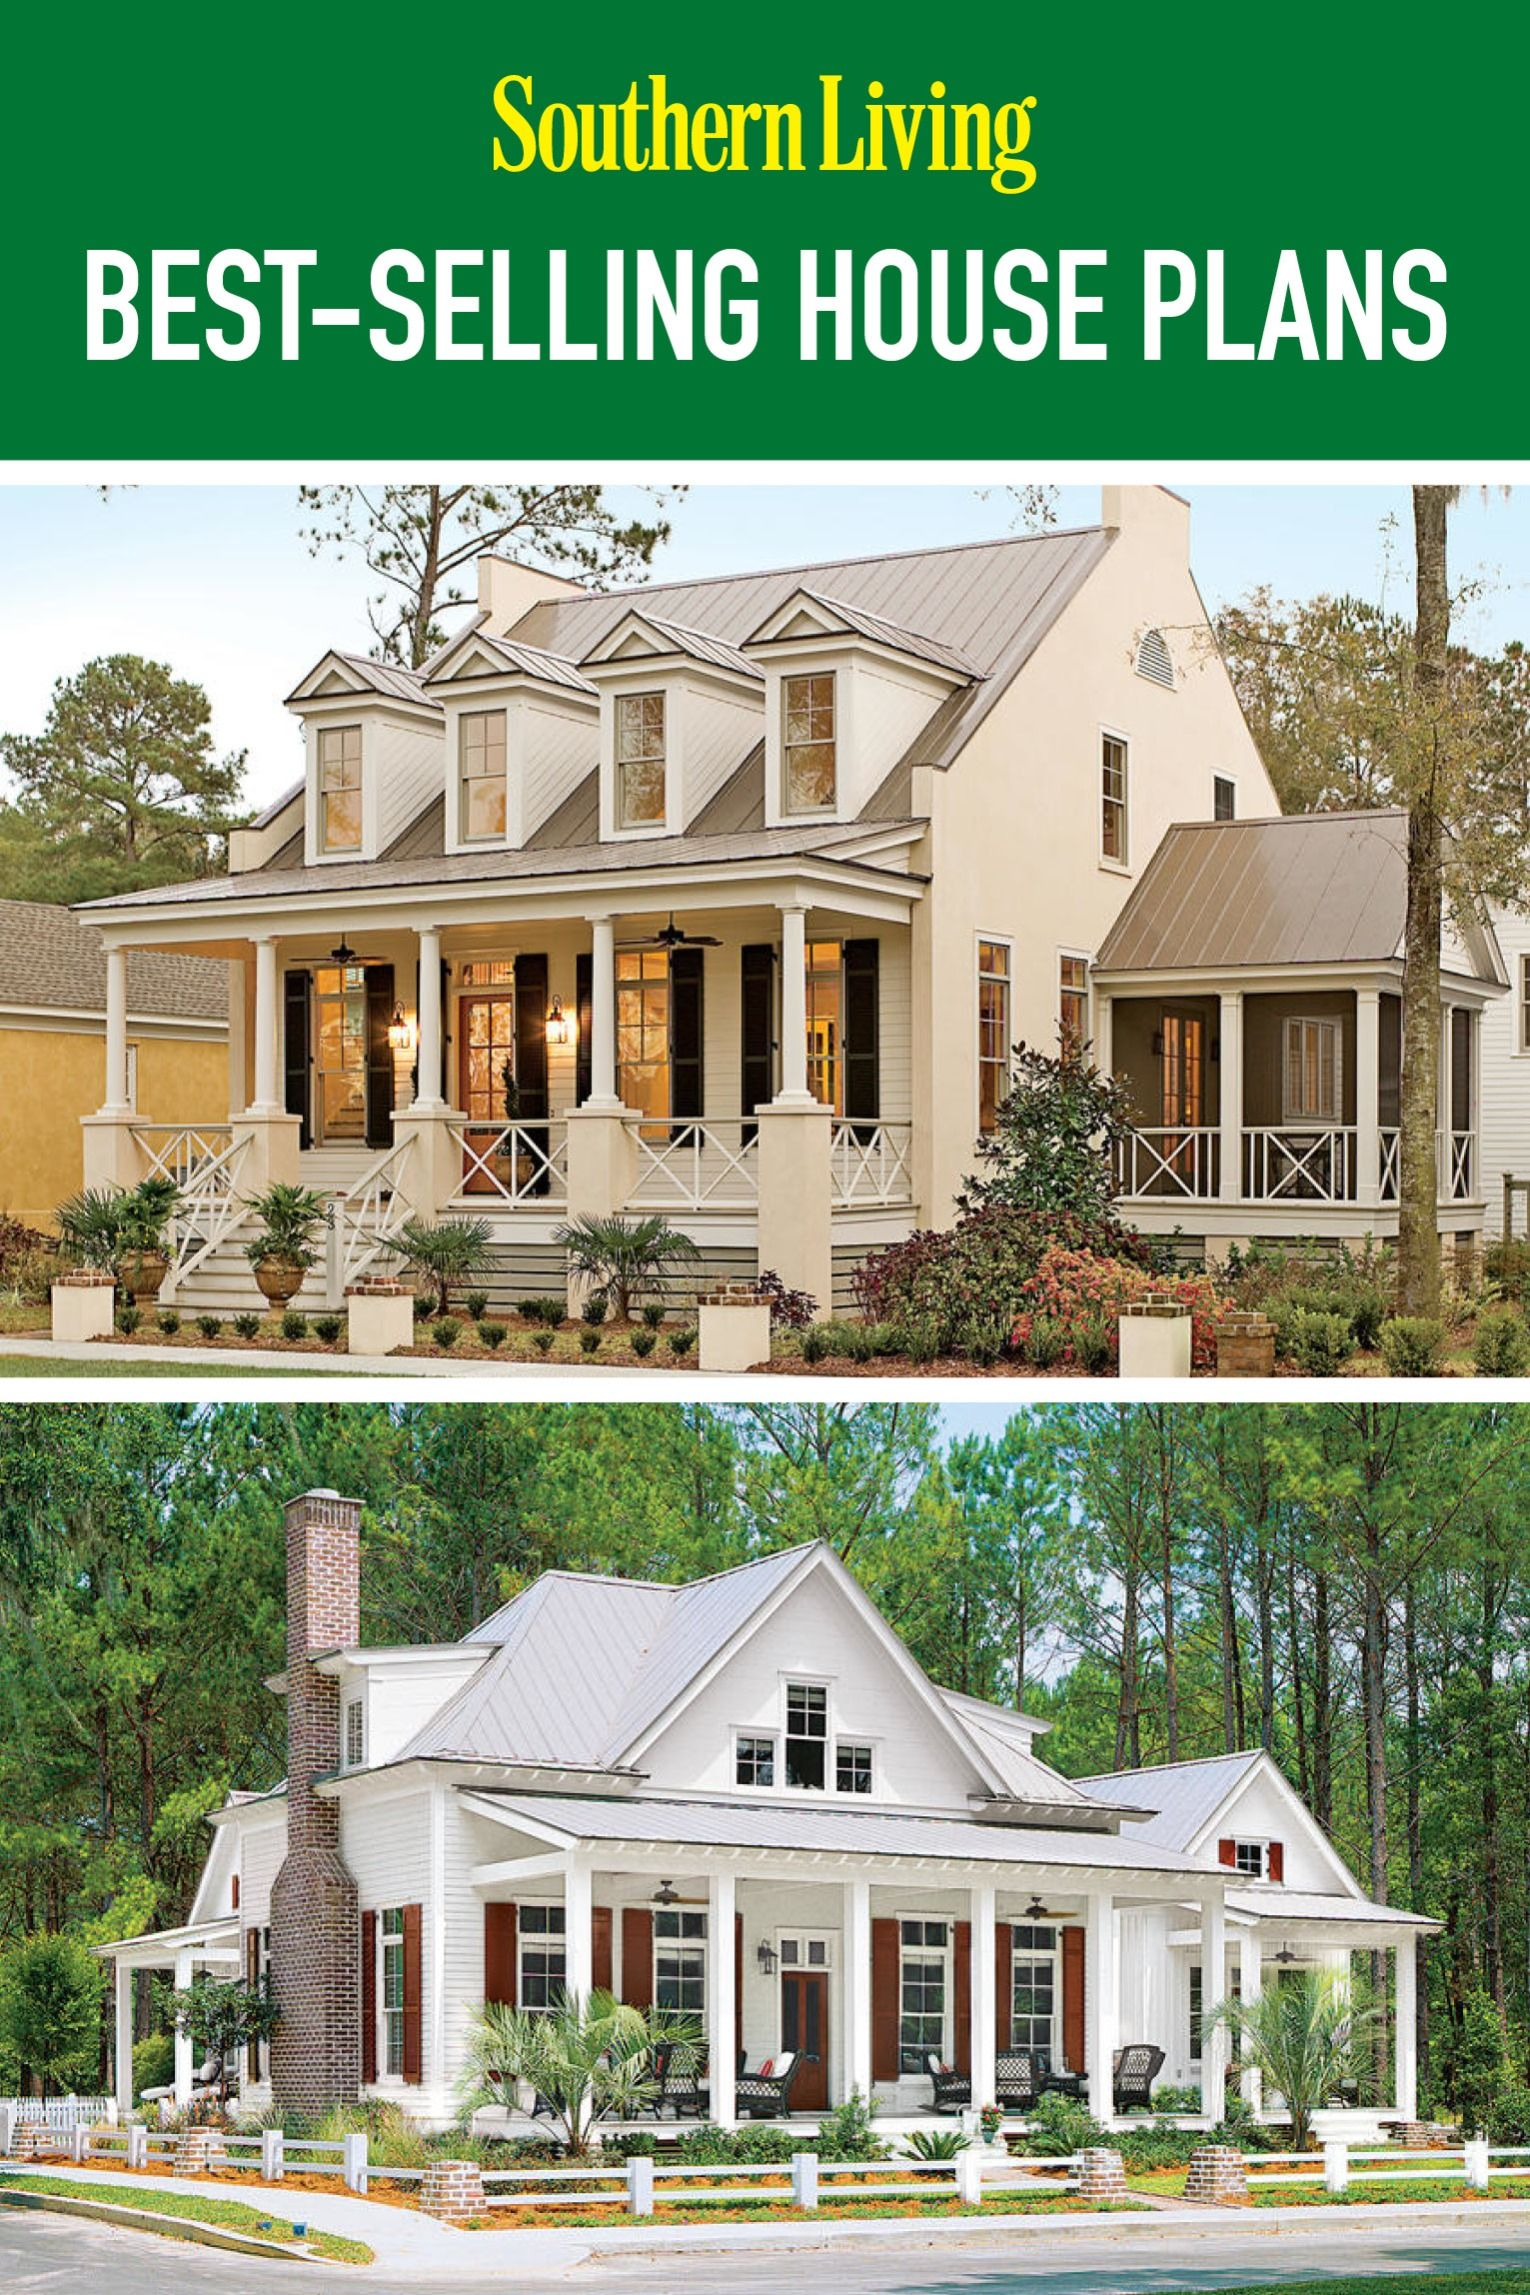 Celebrating Over 30 Years Of Offering Exclusive Custom Designed Homes,  Hereu0027s A Look At Some Of The Most Popular Plans Offered By Southern Living  House ...